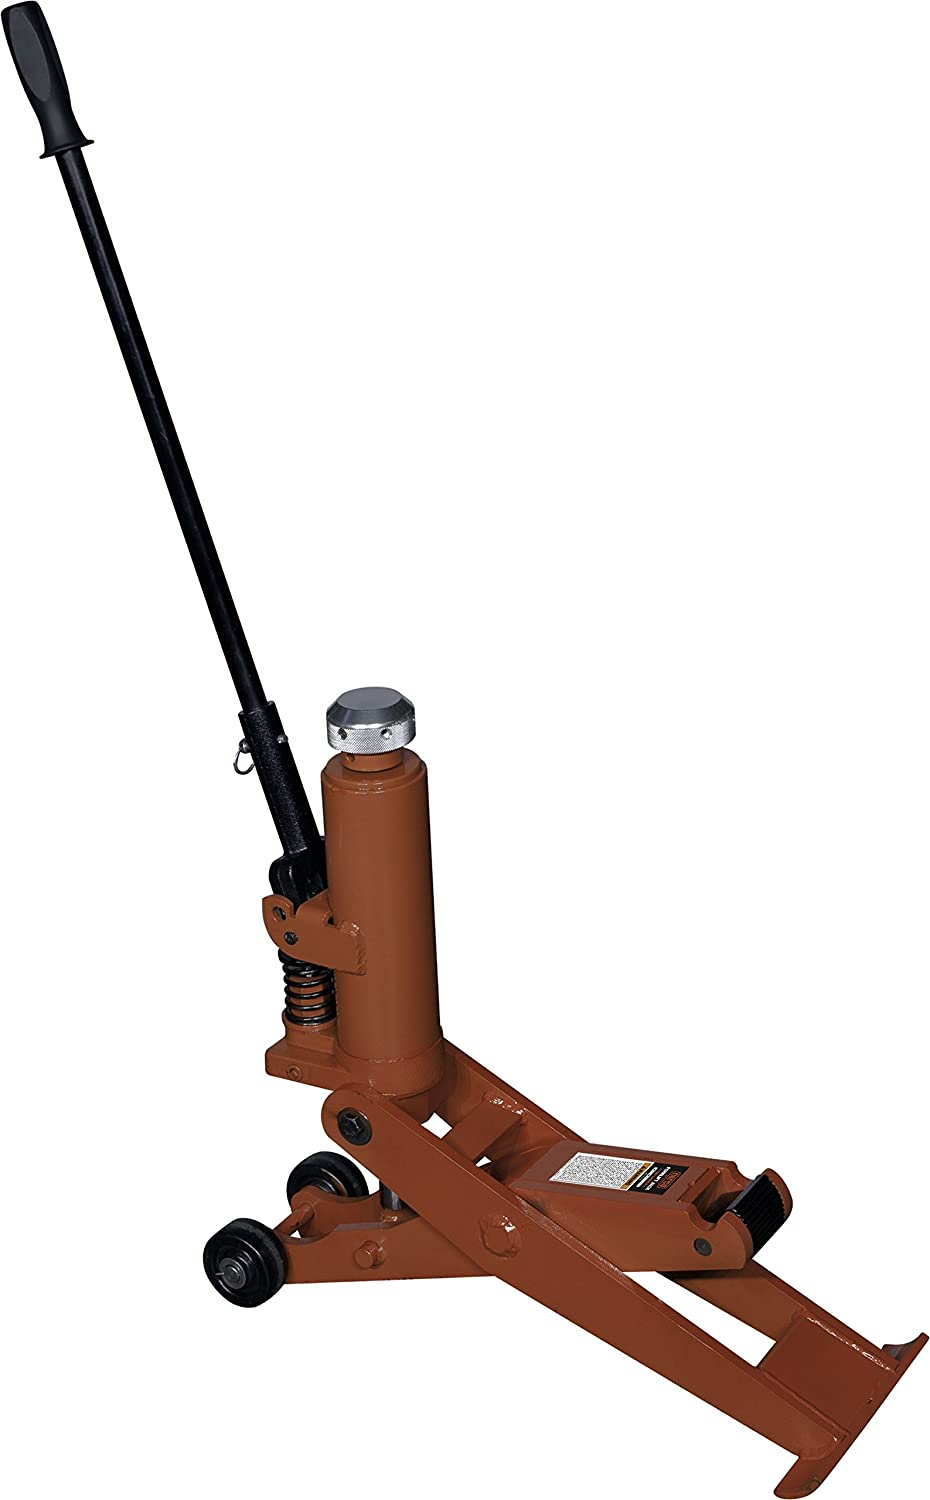 New mail order Norco Professional Lifting Equipment 72036C For 5 Large discharge sale Ton Heavy Duty